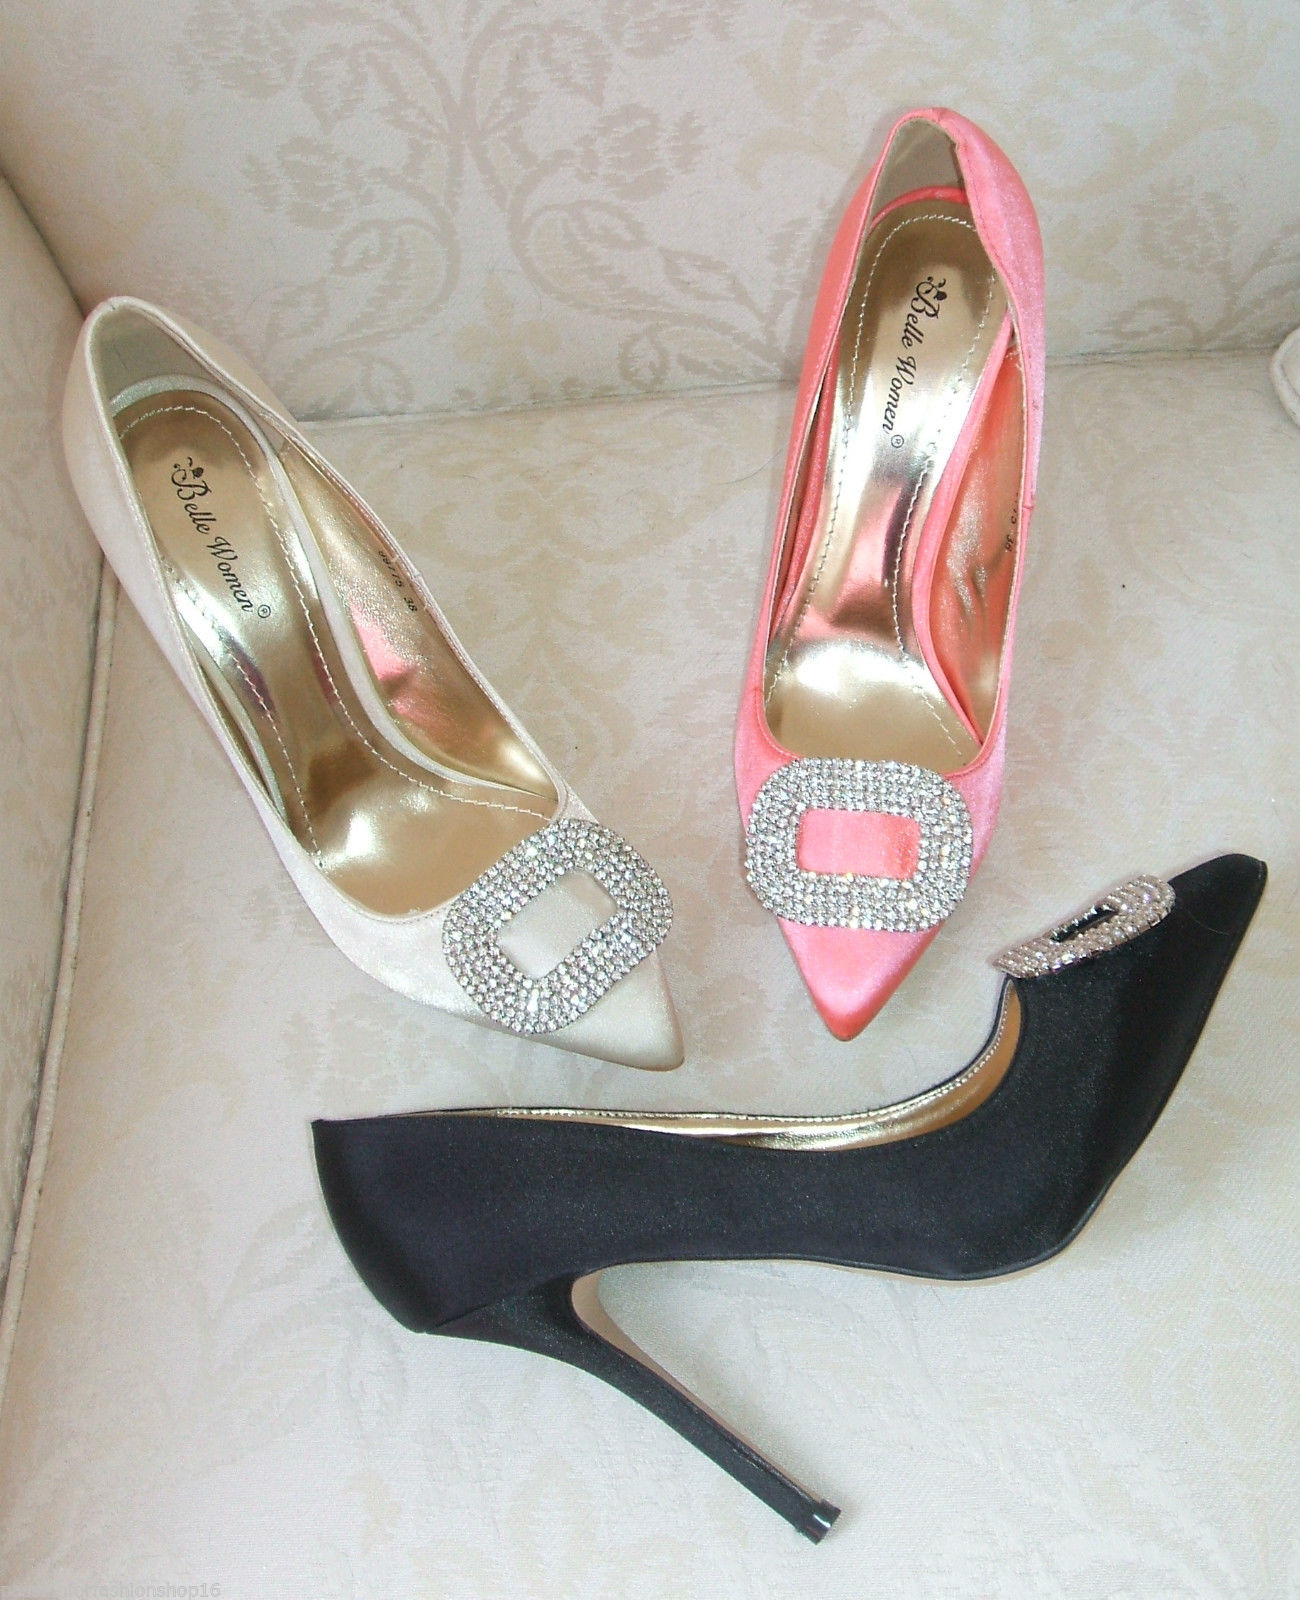 BNWB SIZE 3 4 5 6 7 8 IVORY SILVER CORAL BLACK SATIN DIAMANTE OCCASION SHOES